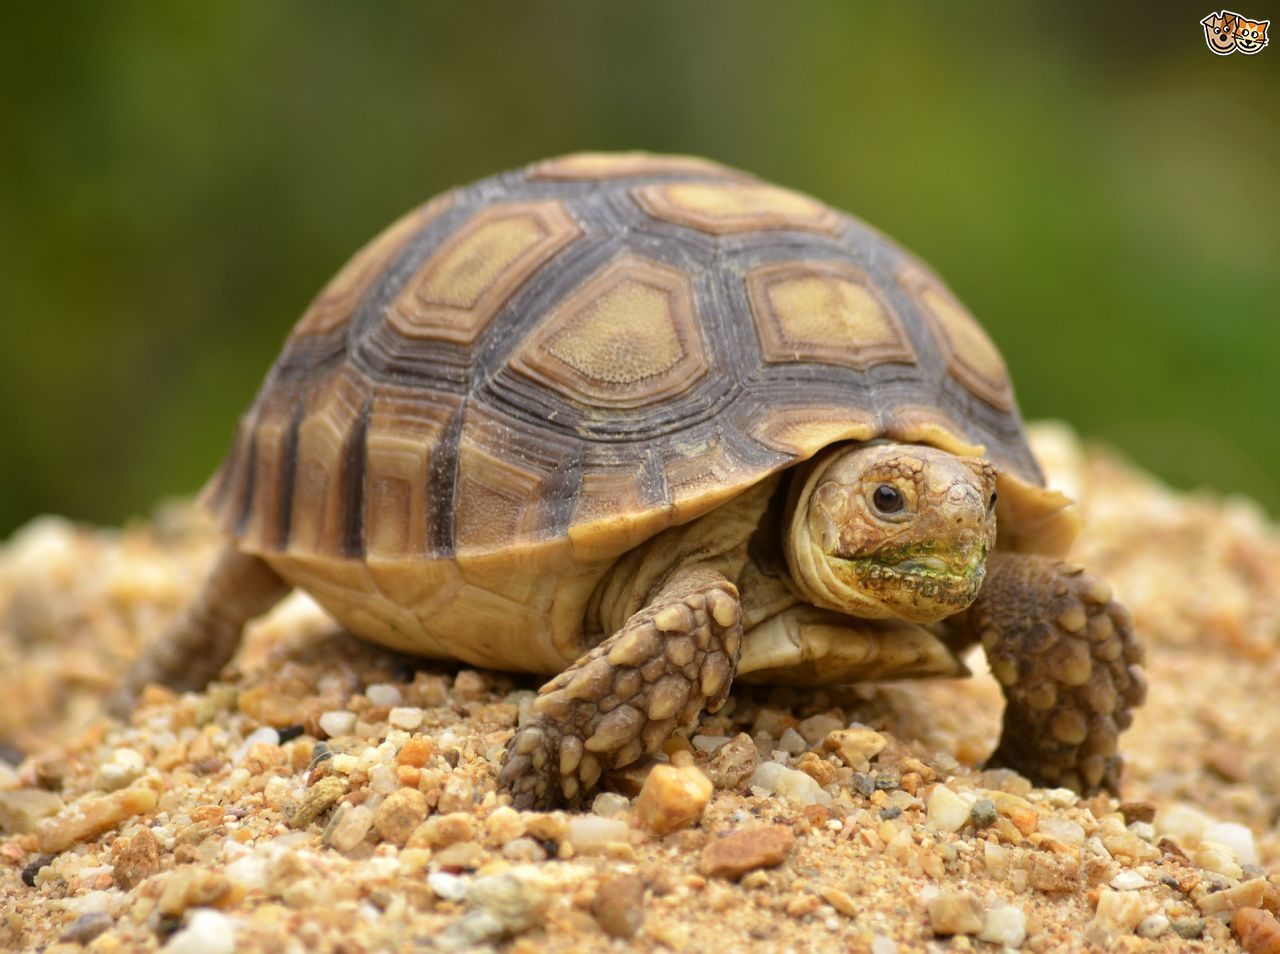 Tortoise and turtle shells, and potential problems